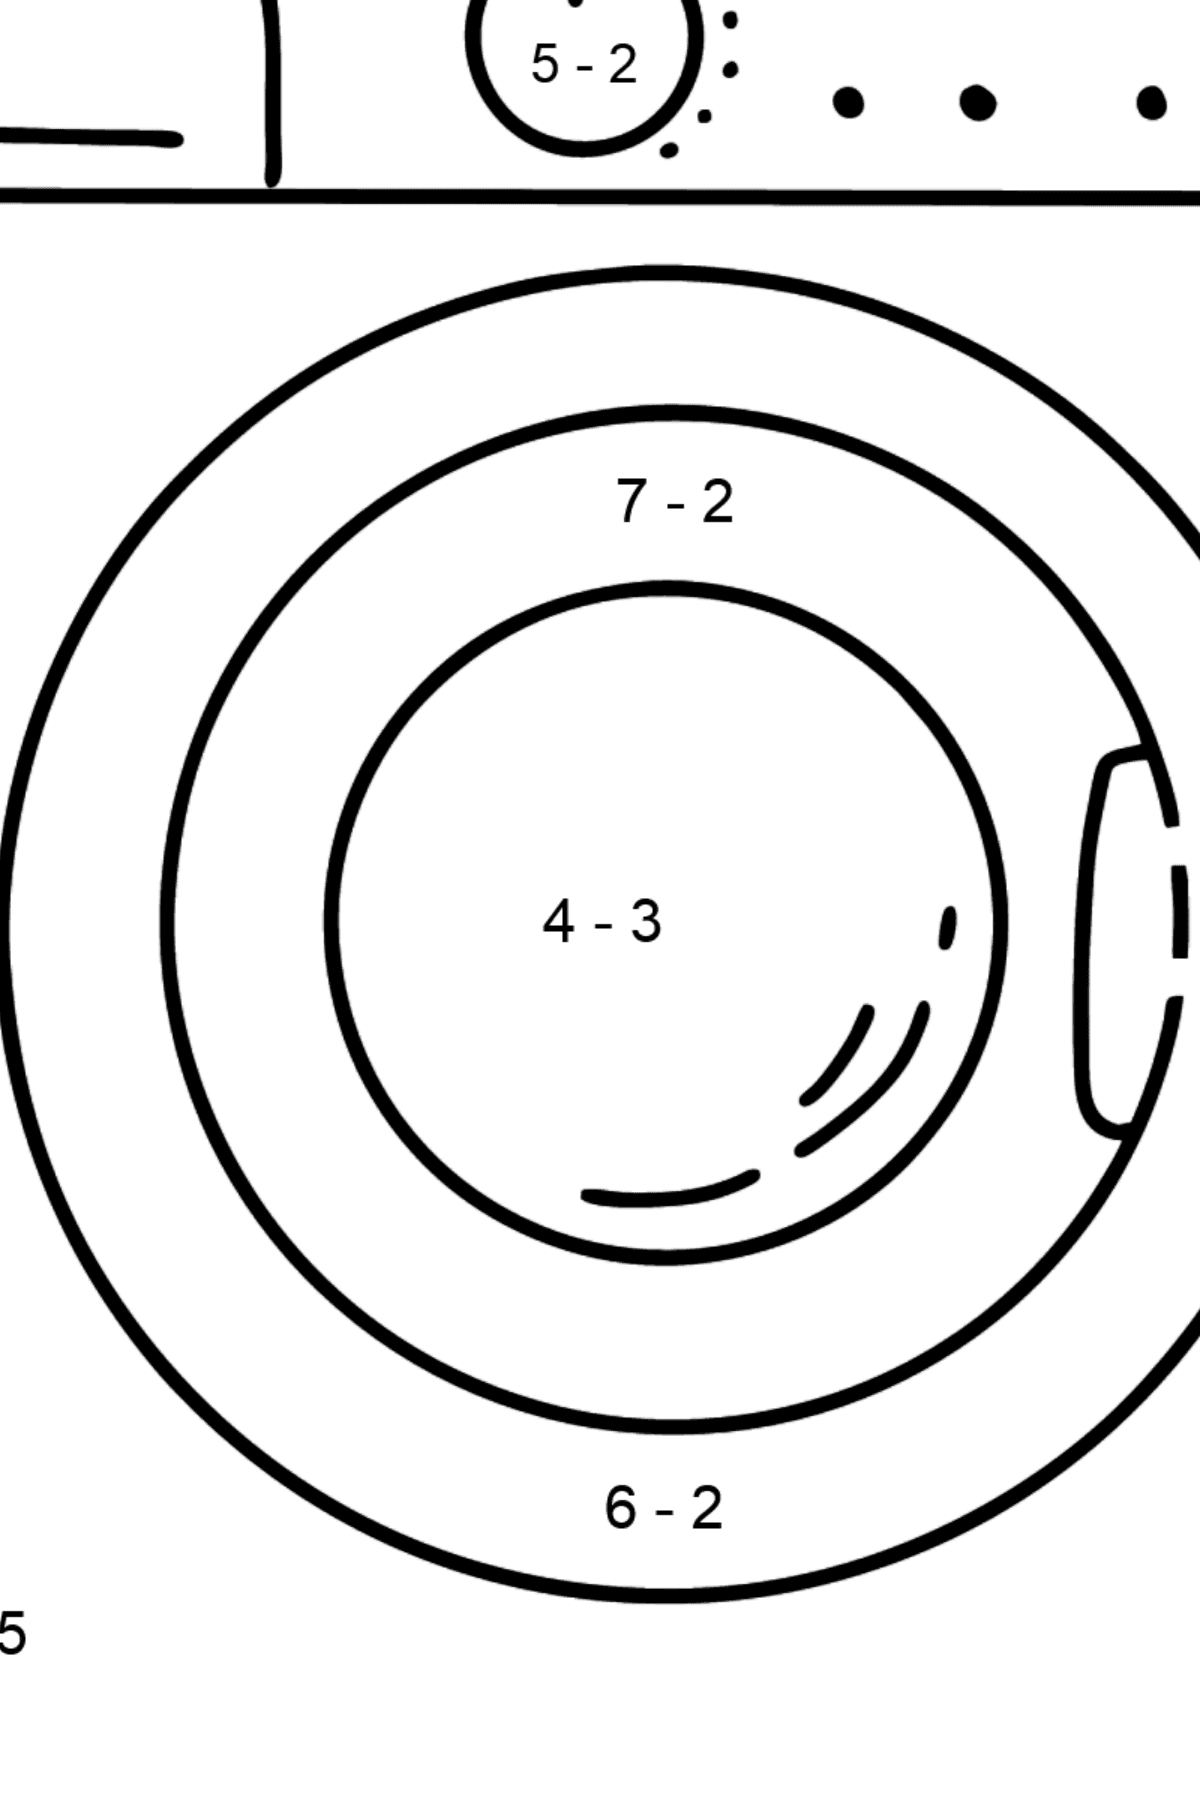 Dishwashe coloring page - Math Coloring - Subtraction for Kids